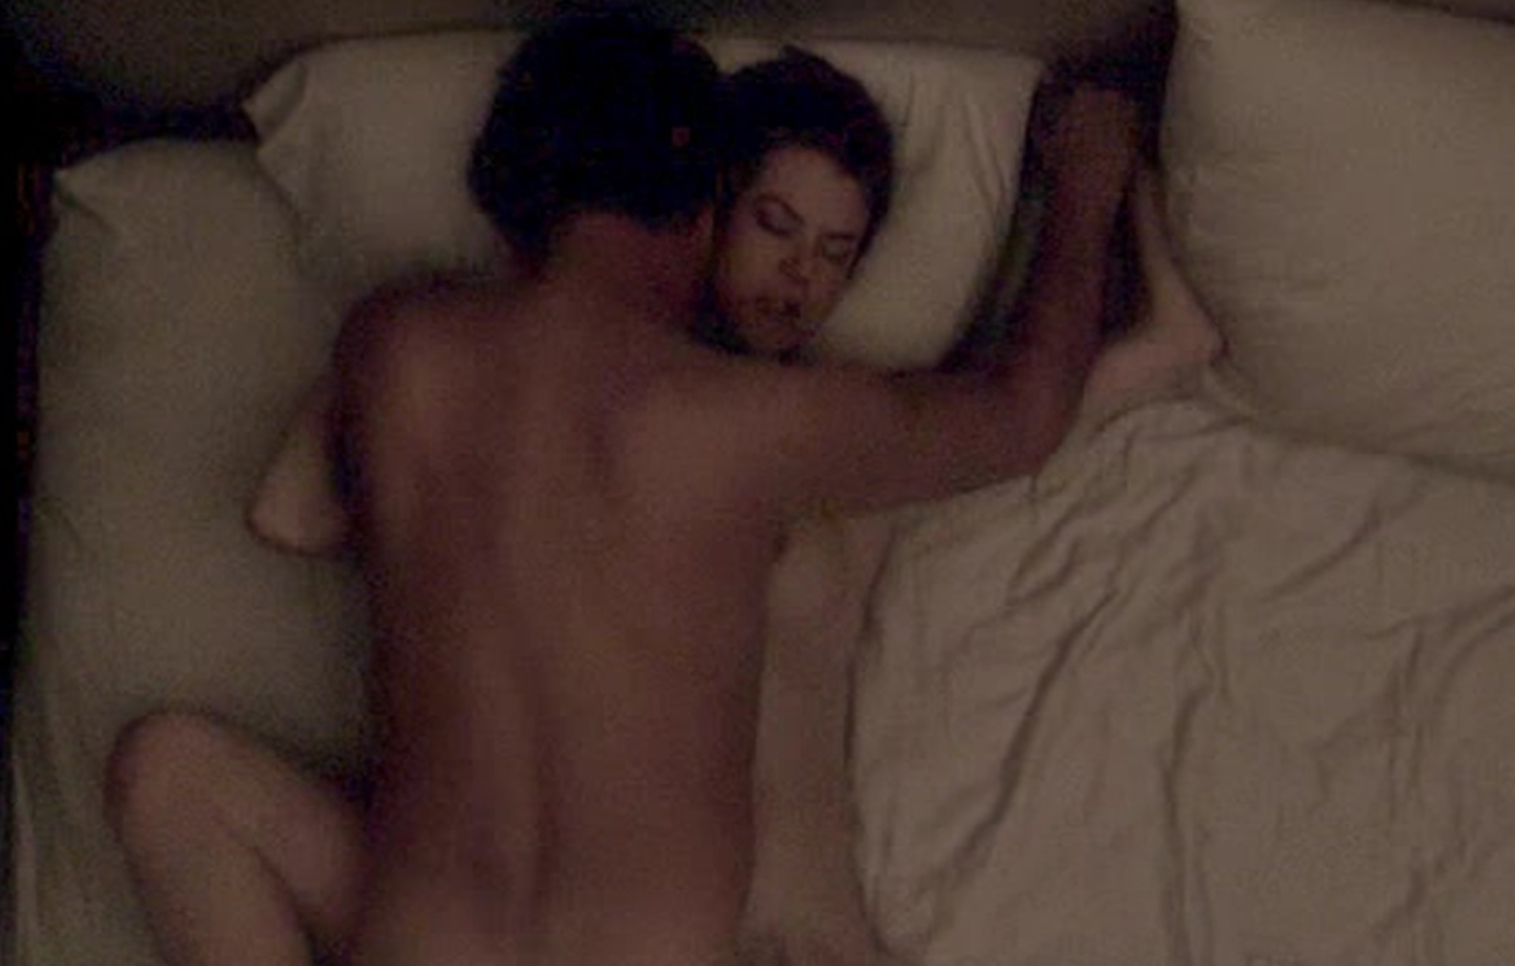 Sex scene from cold mountain girl controler nude